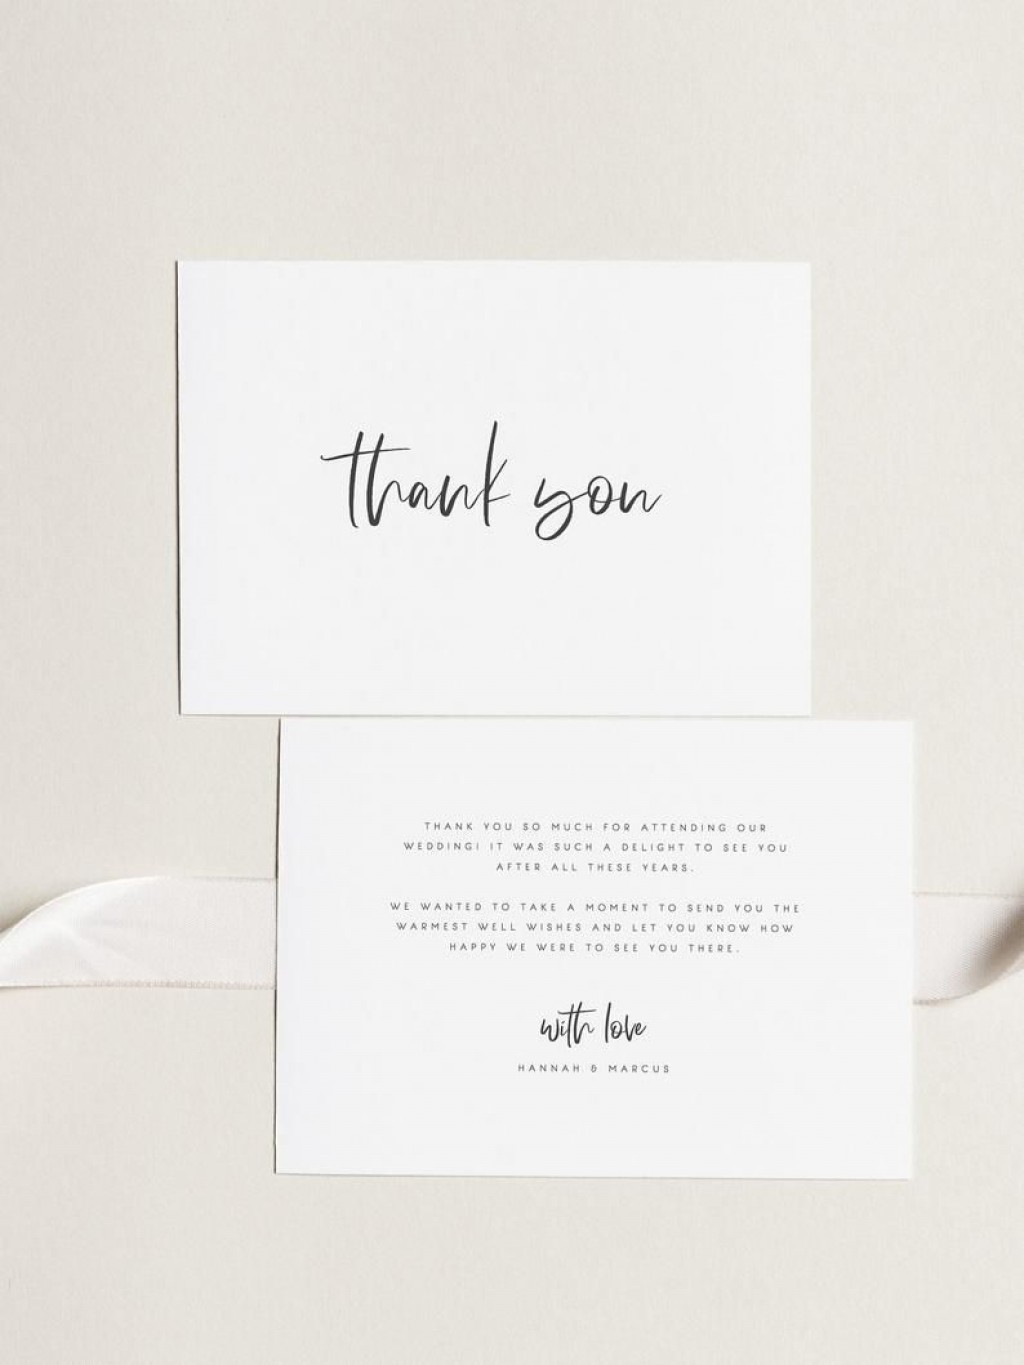 000 Archaicawful Wedding Thank You Card Template Example  Message Sample Free Download Wording For MoneyLarge